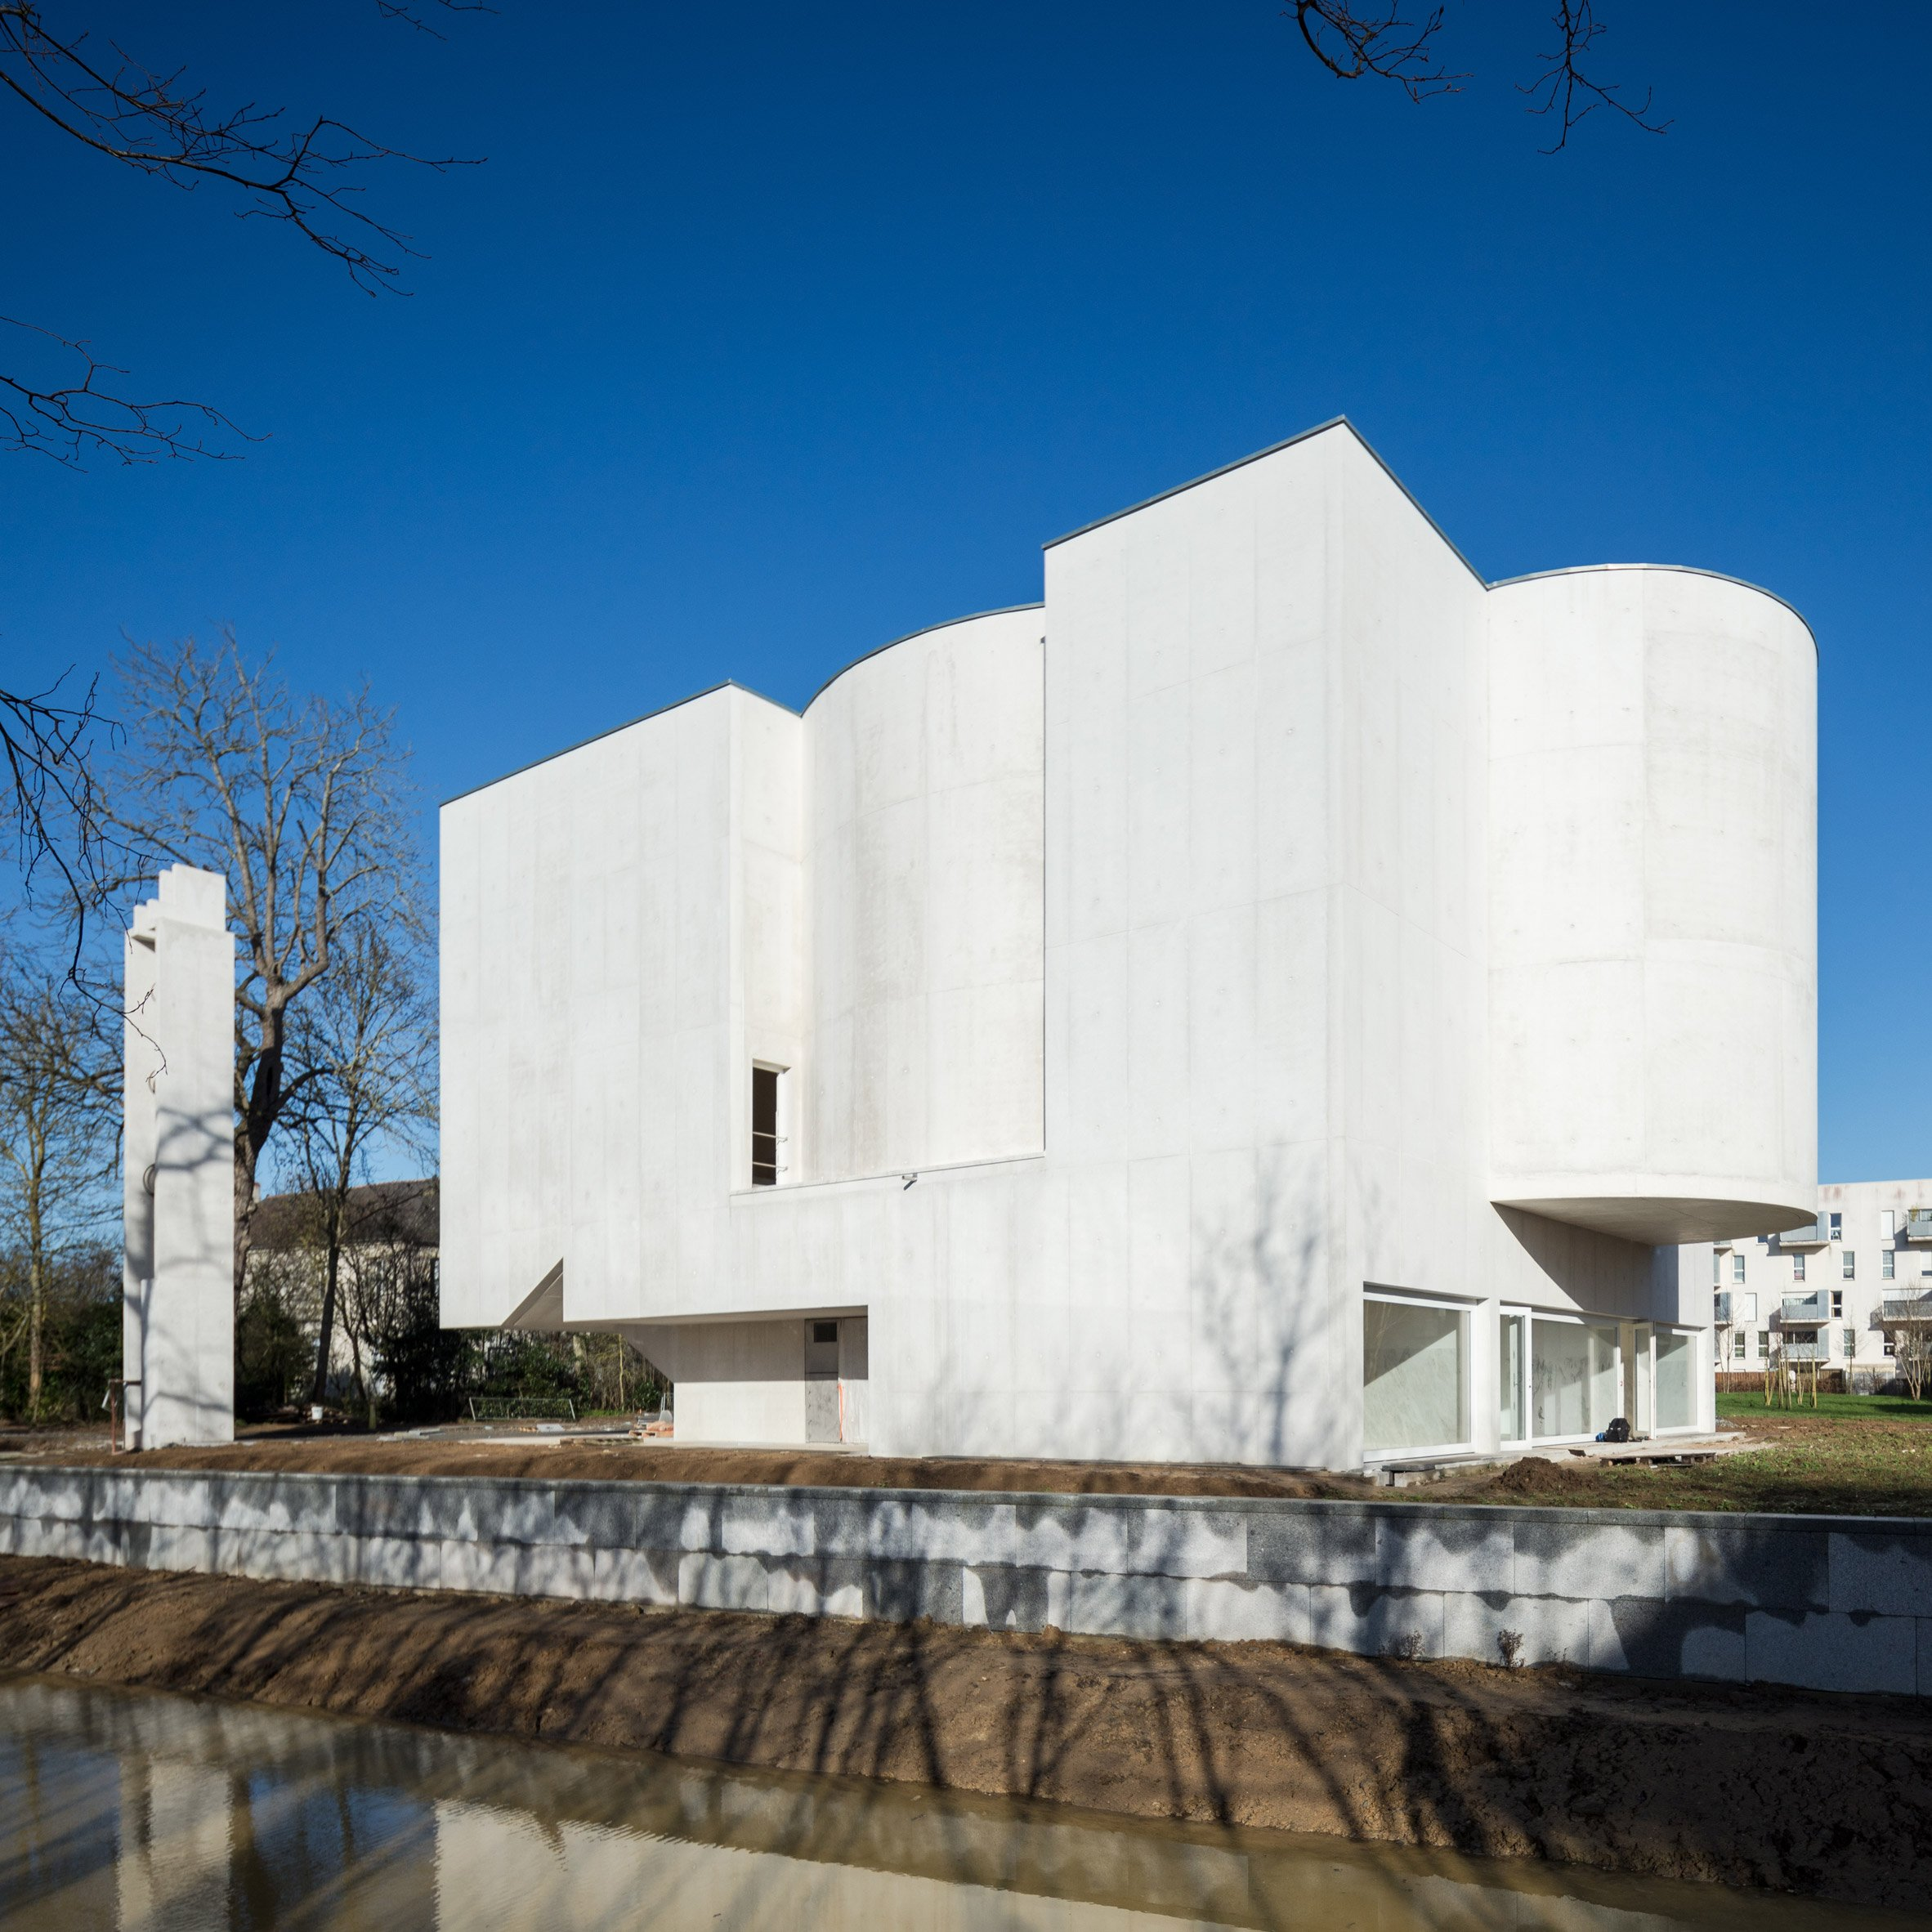 New Church of Saint-Jacques by Alvaro Siza